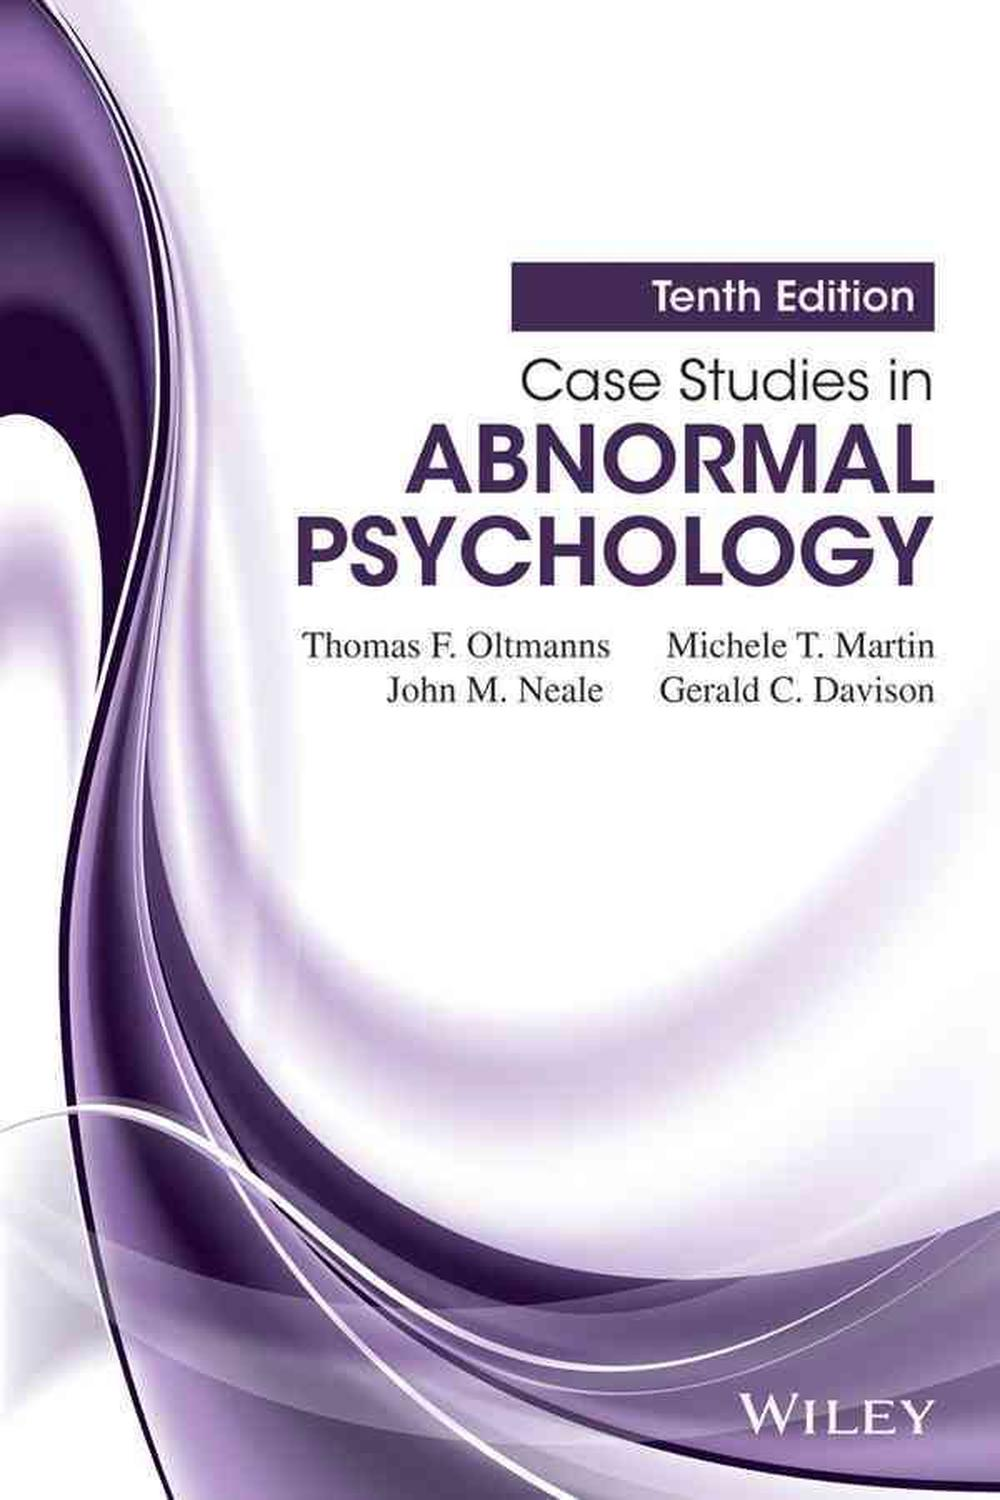 Case Studies in Abnormal Psychology, Tenth Edition